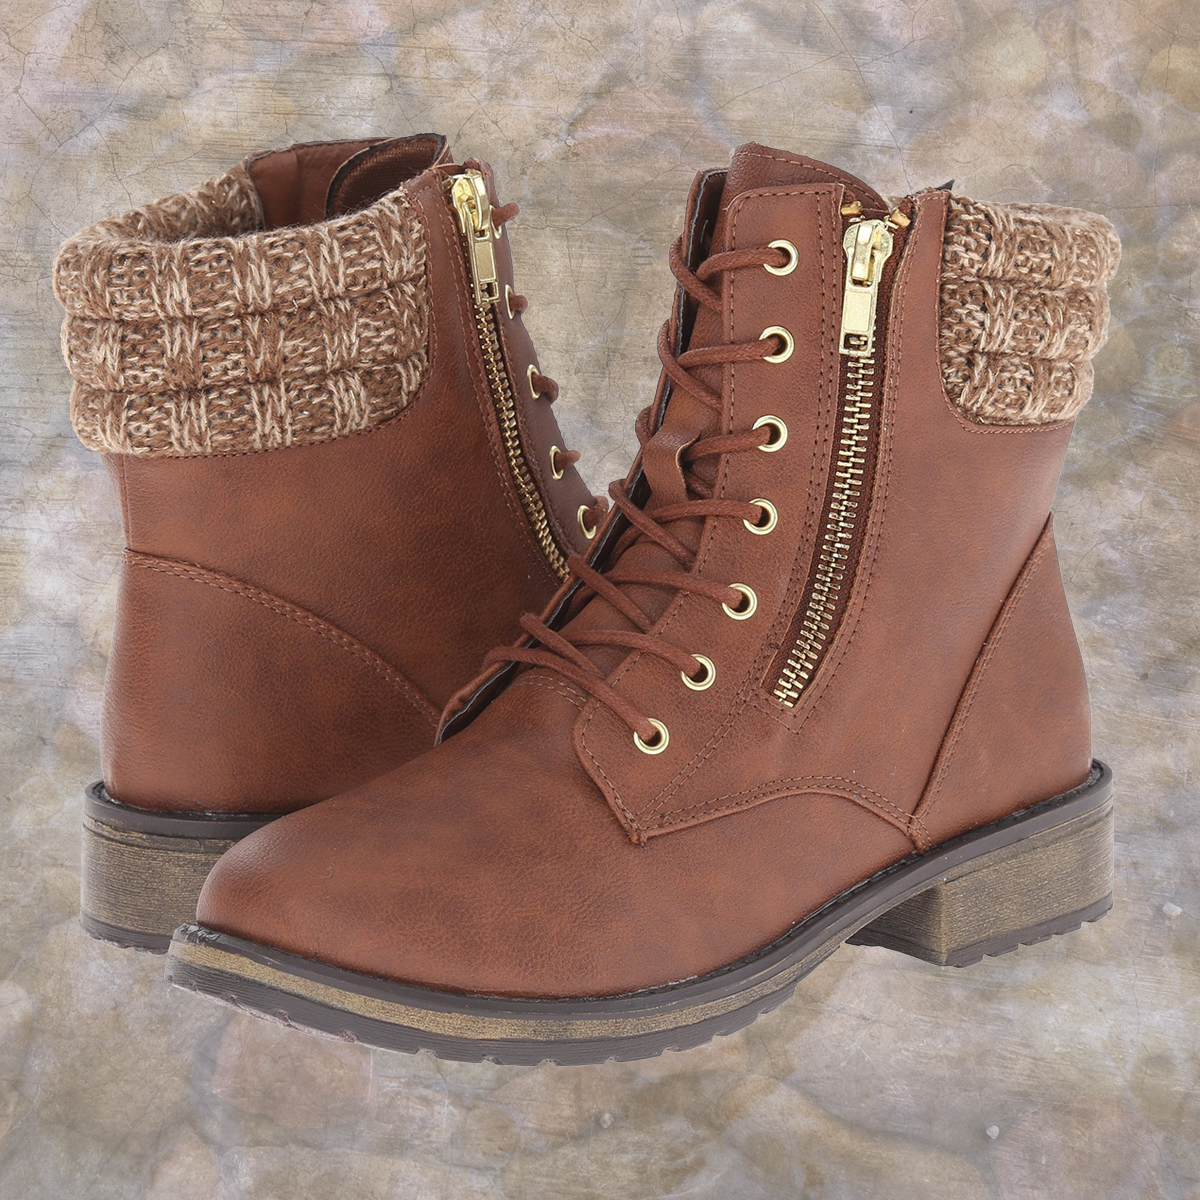 Cute combat boots with sweater and zipper details from Steve Madden